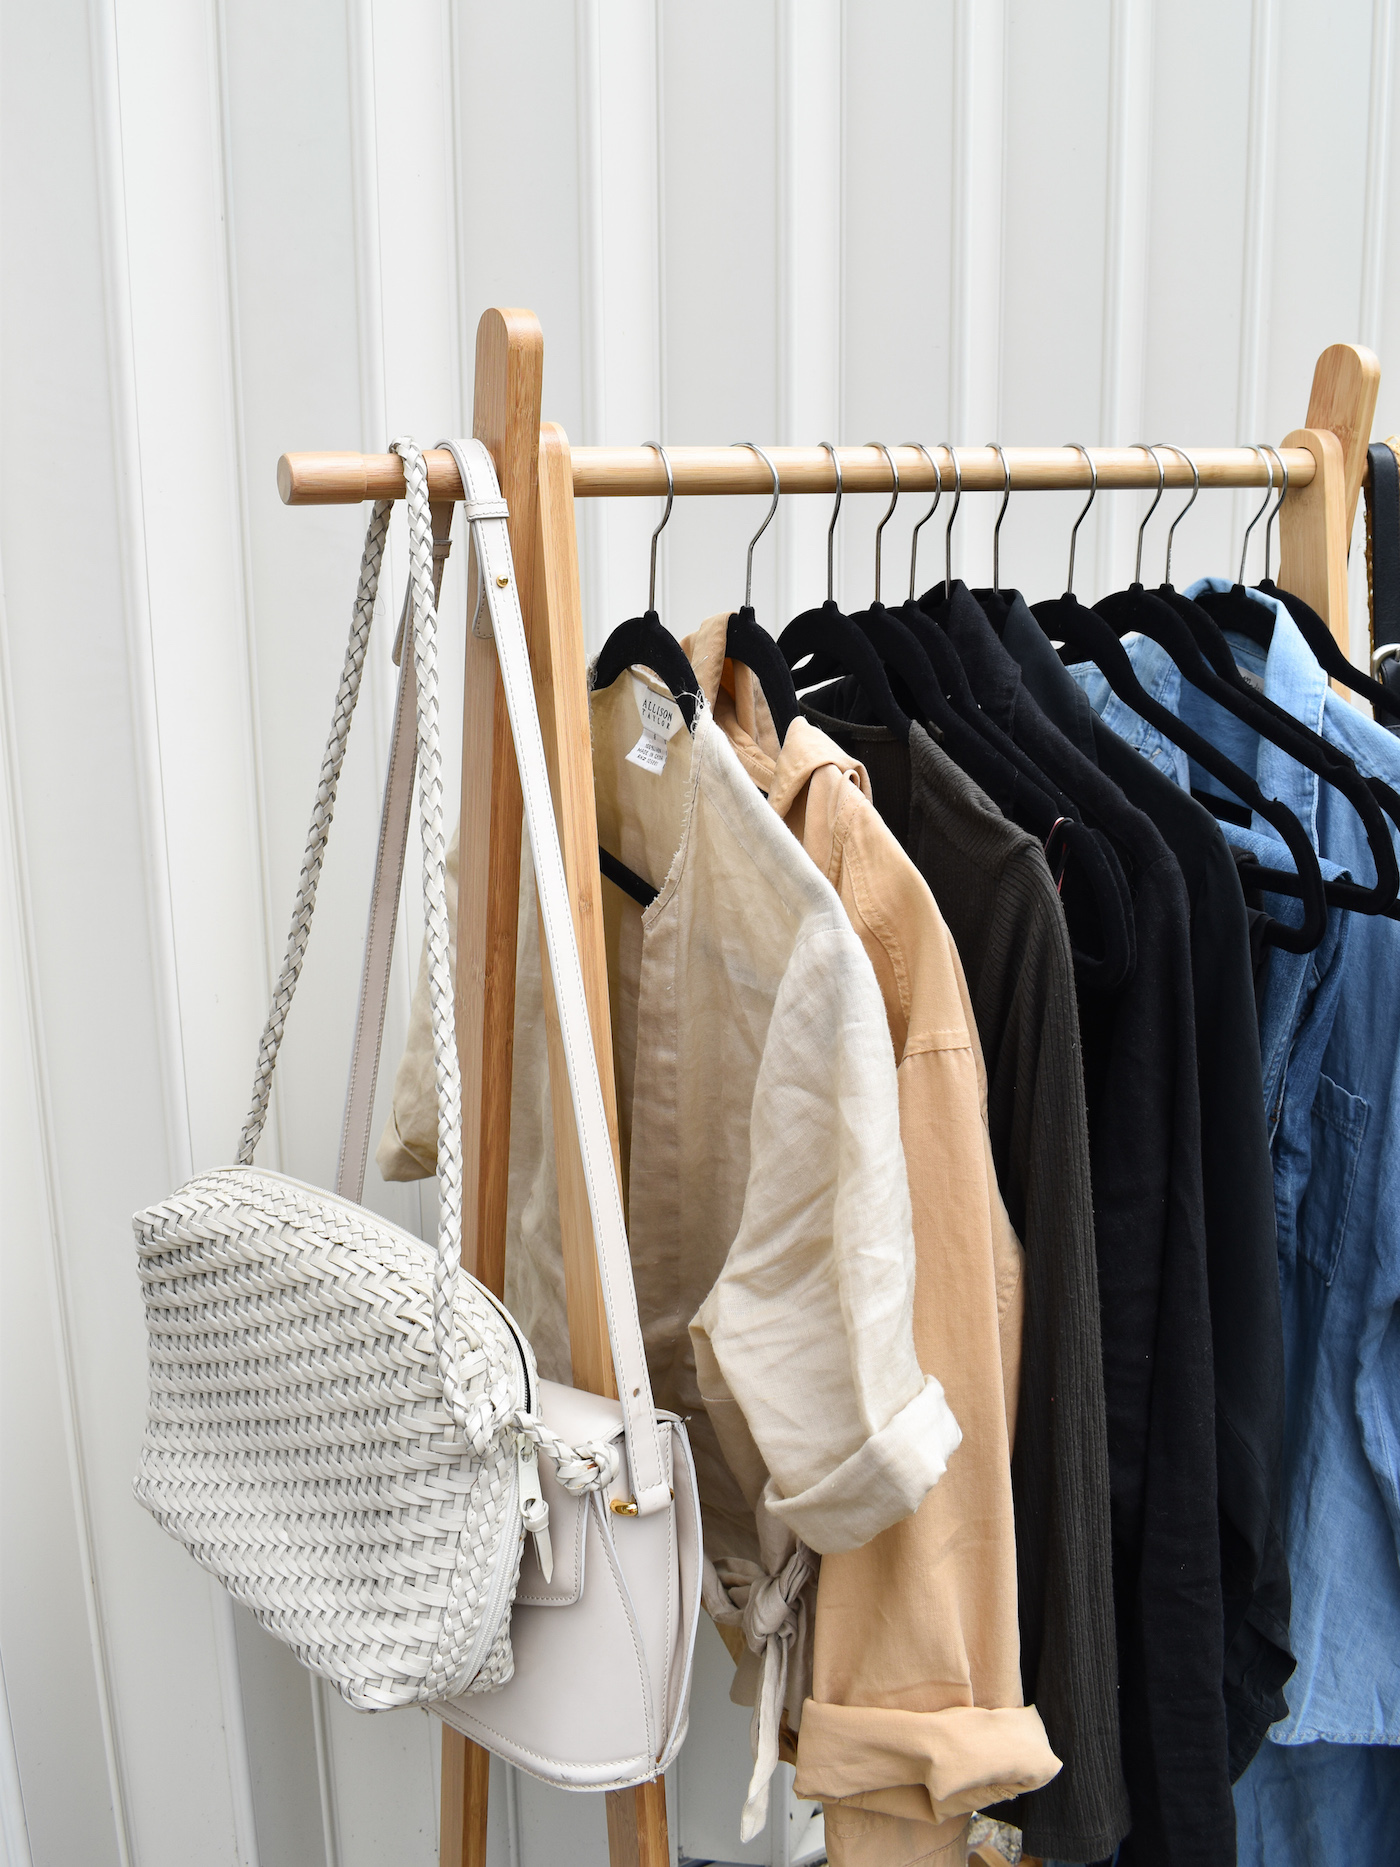 Practical Capsule Wardrobe // Week Of Outfits With Élan Byrd On The Good Trade